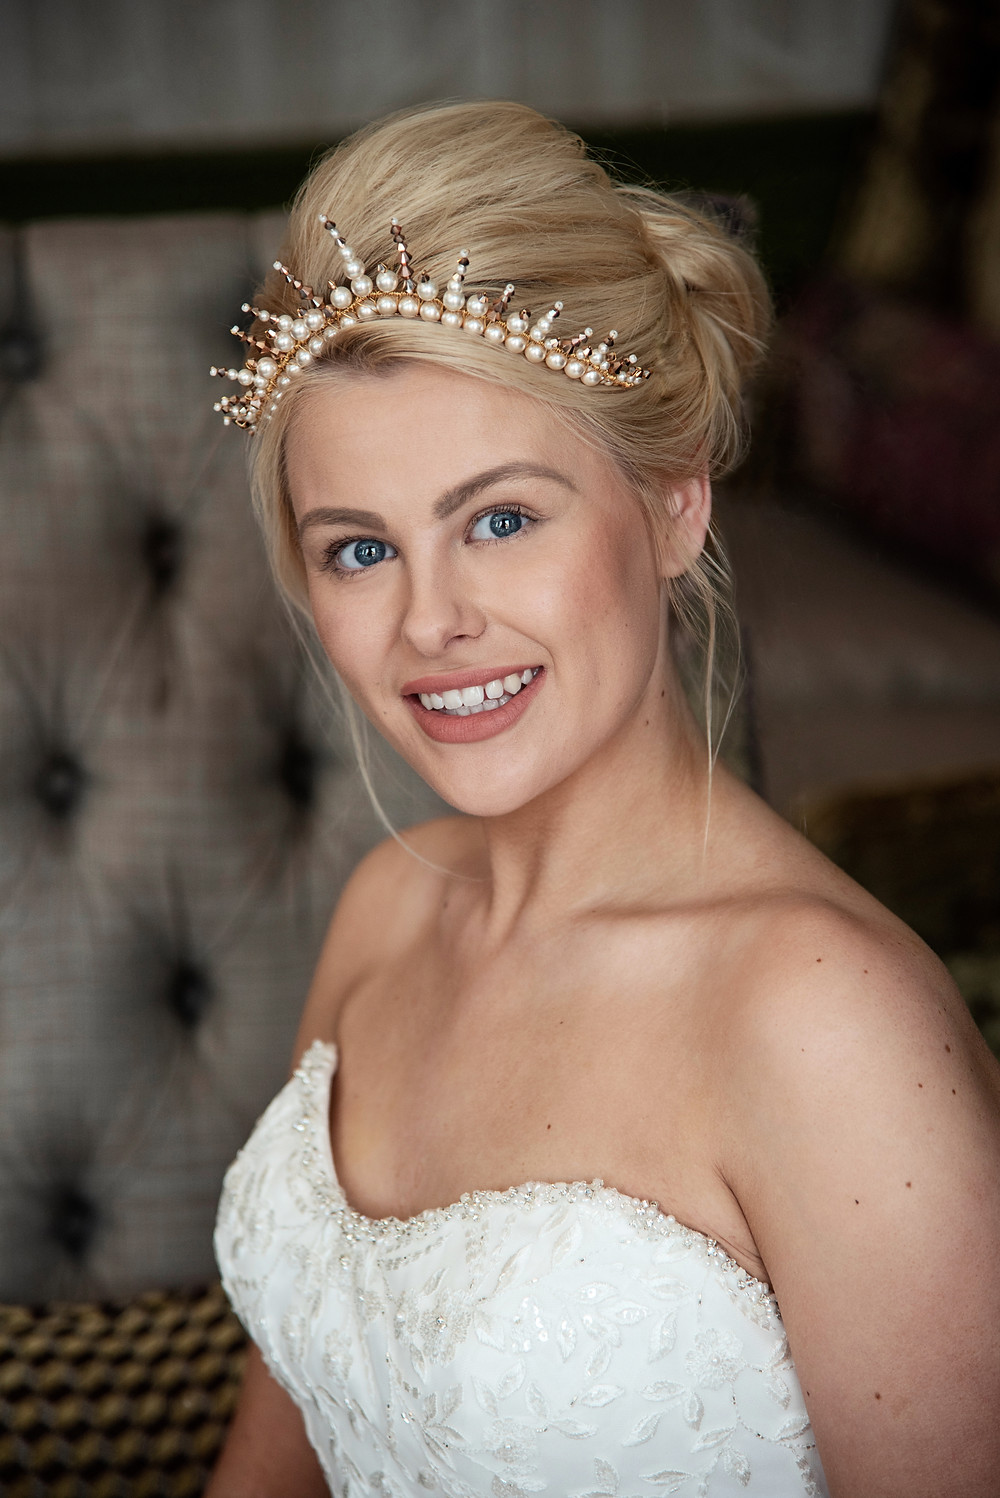 Classic Wedding Up Do. Bridal Up Do. Modern Tiara. Wedding hair accessories form Glorious by Heidi Cheshire